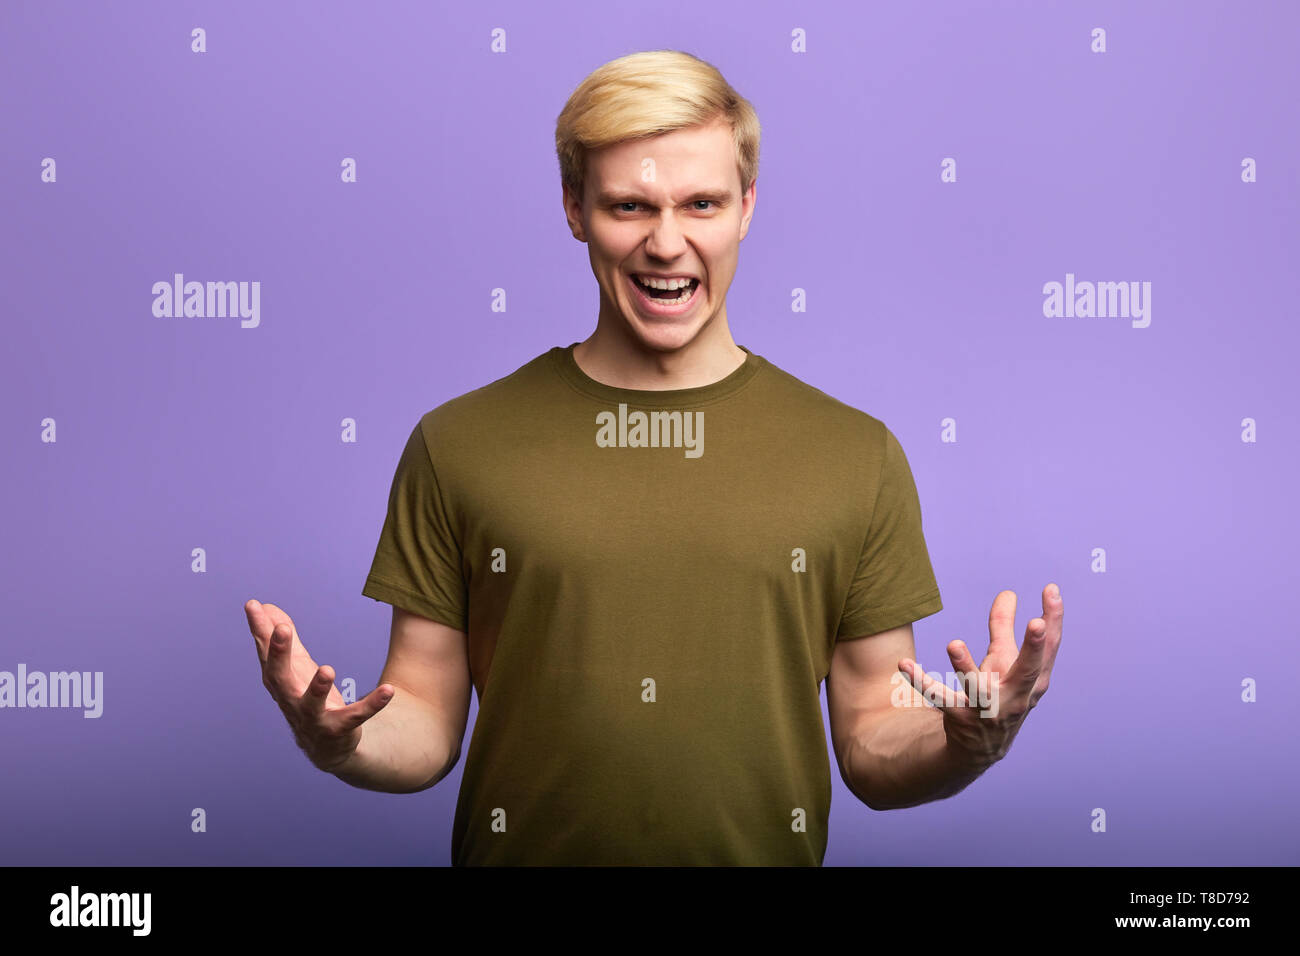 angry unhappy frustrated young man with arms out, shouting at somebody, negative emotion, feeling, frustration, anger. emotional man explaining something - Stock Image